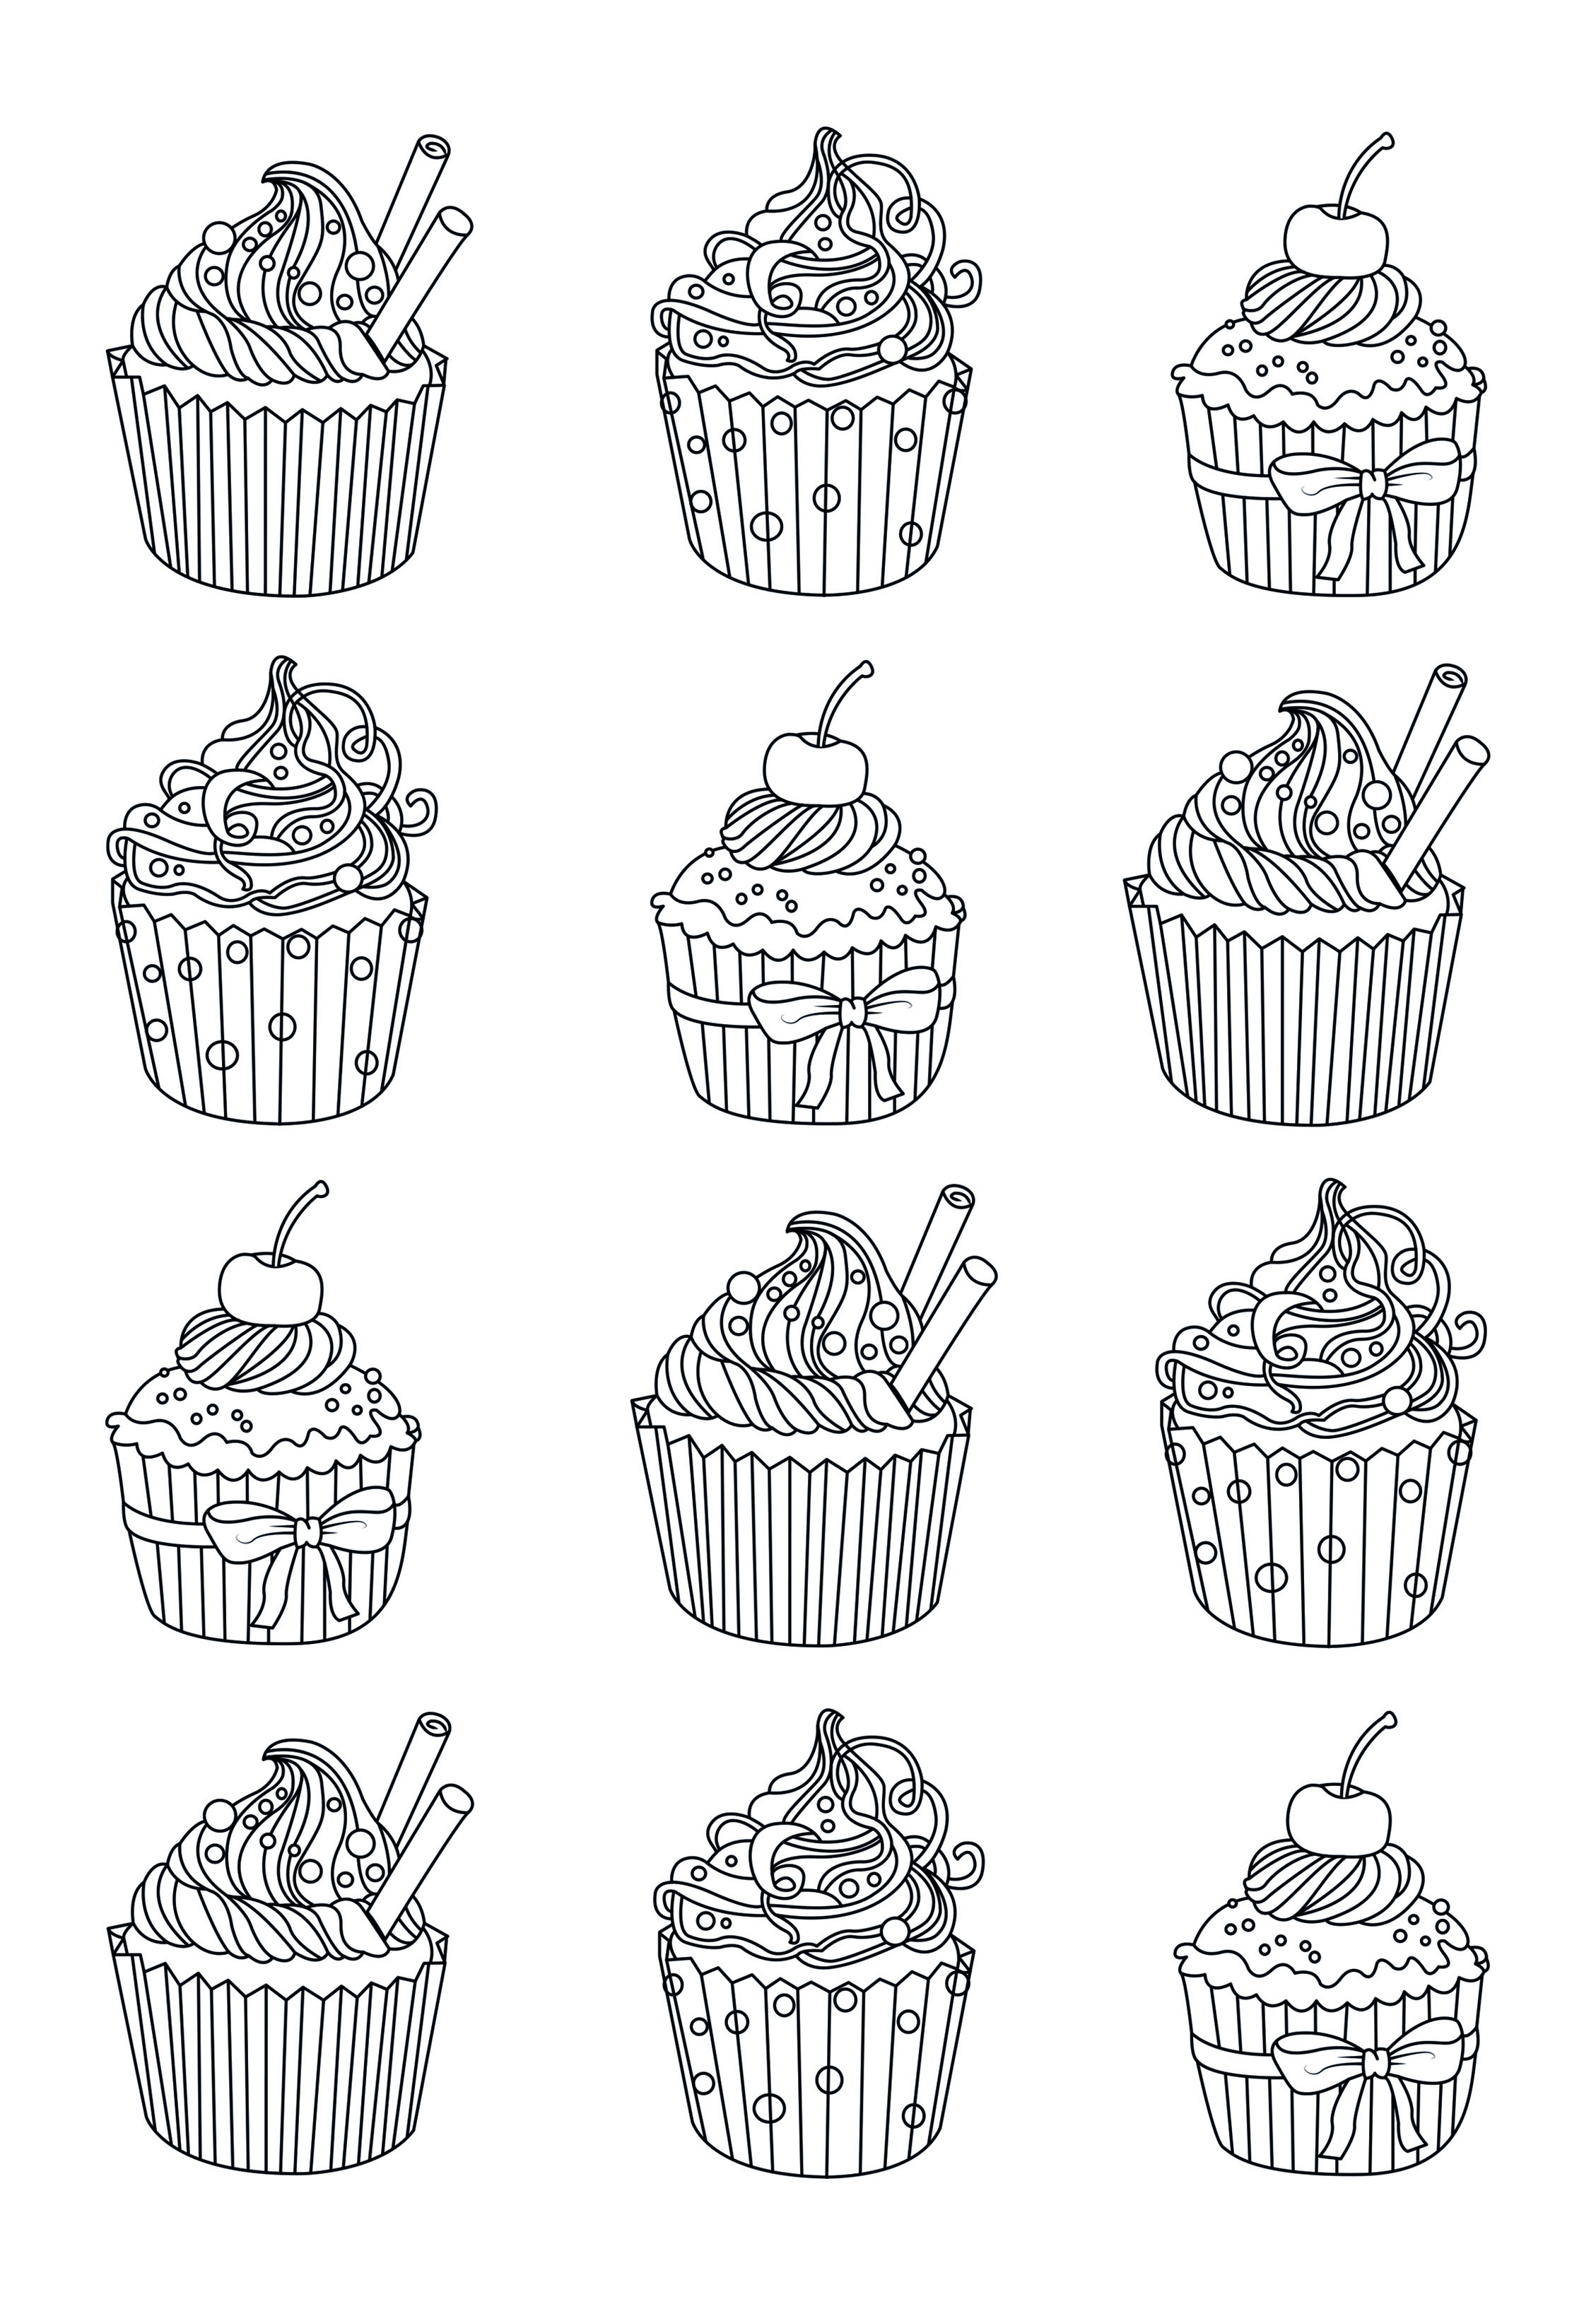 Yum-yum, many coloring page easy to colors ... and eat ?From the gallery : Cup CakesArtist : Celine